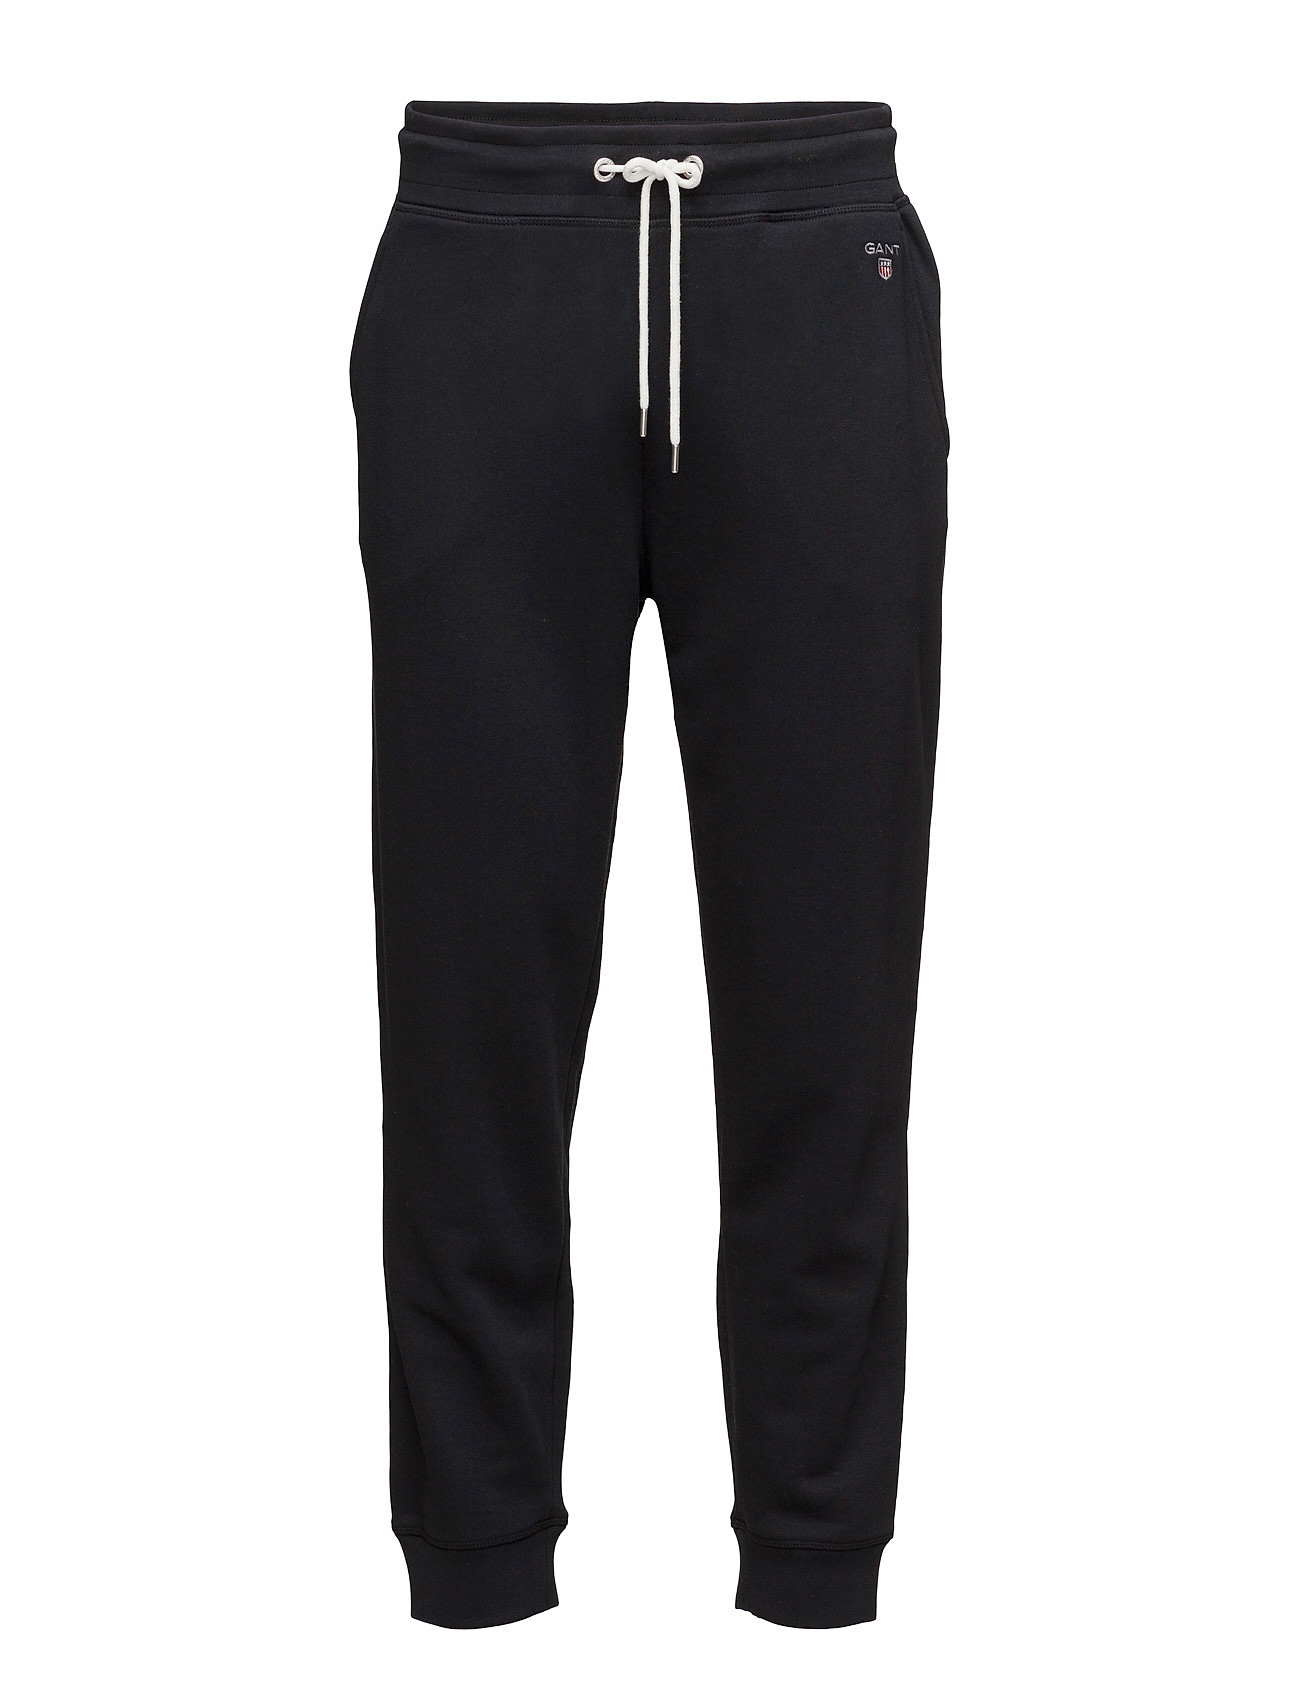 GANT THE ORIGINAL SWEAT PANTS